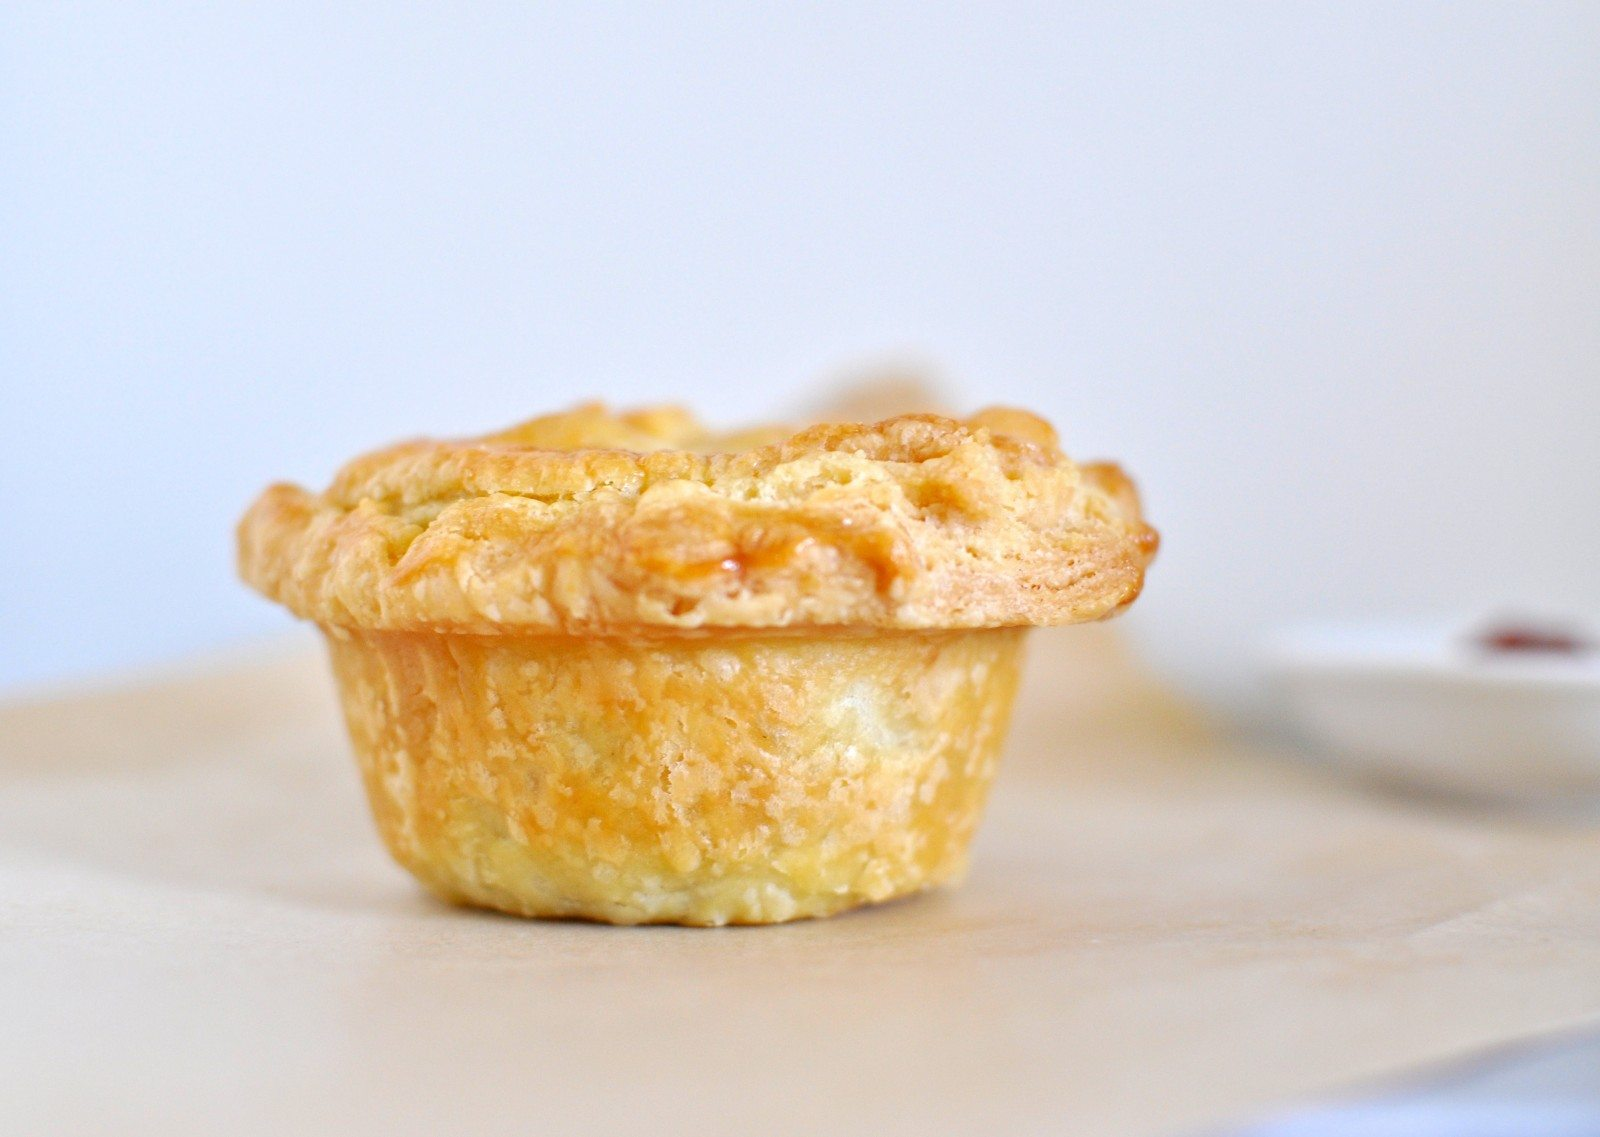 Beef and guinness 'Aussie' meat pies